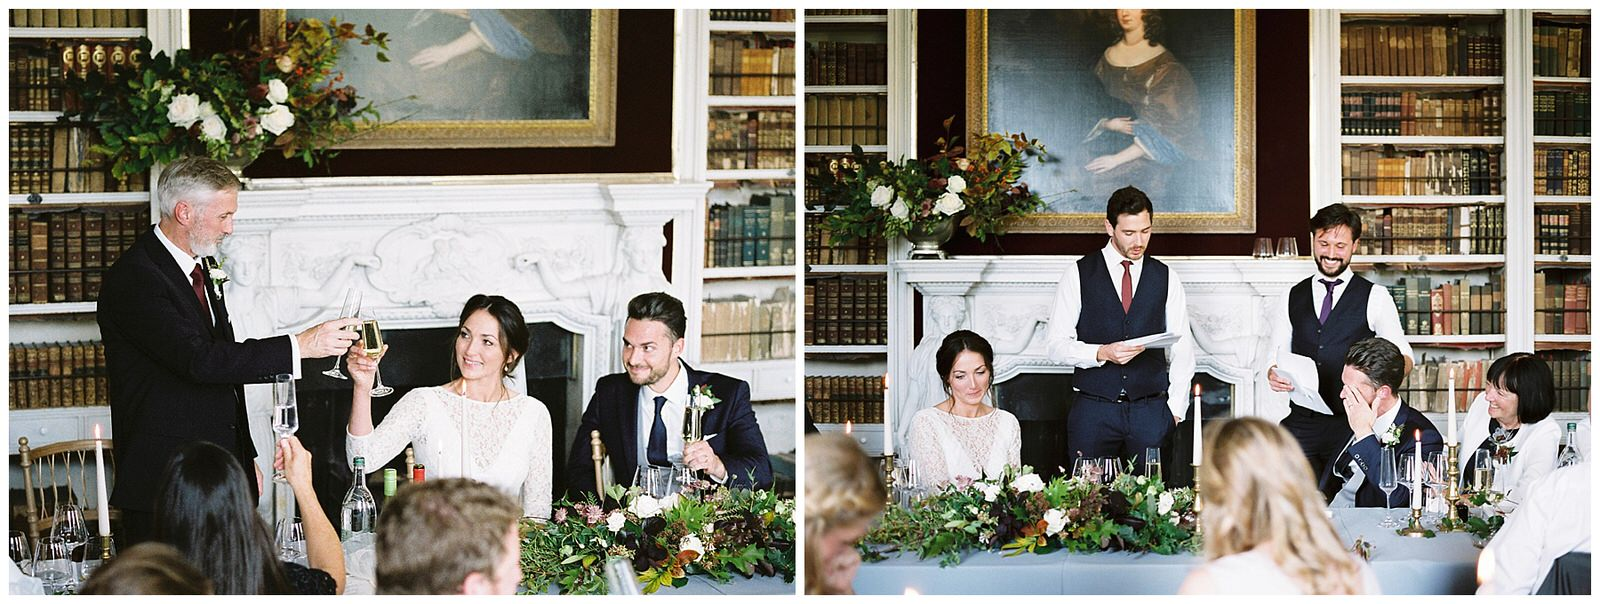 wedding speeches in st giles house library room